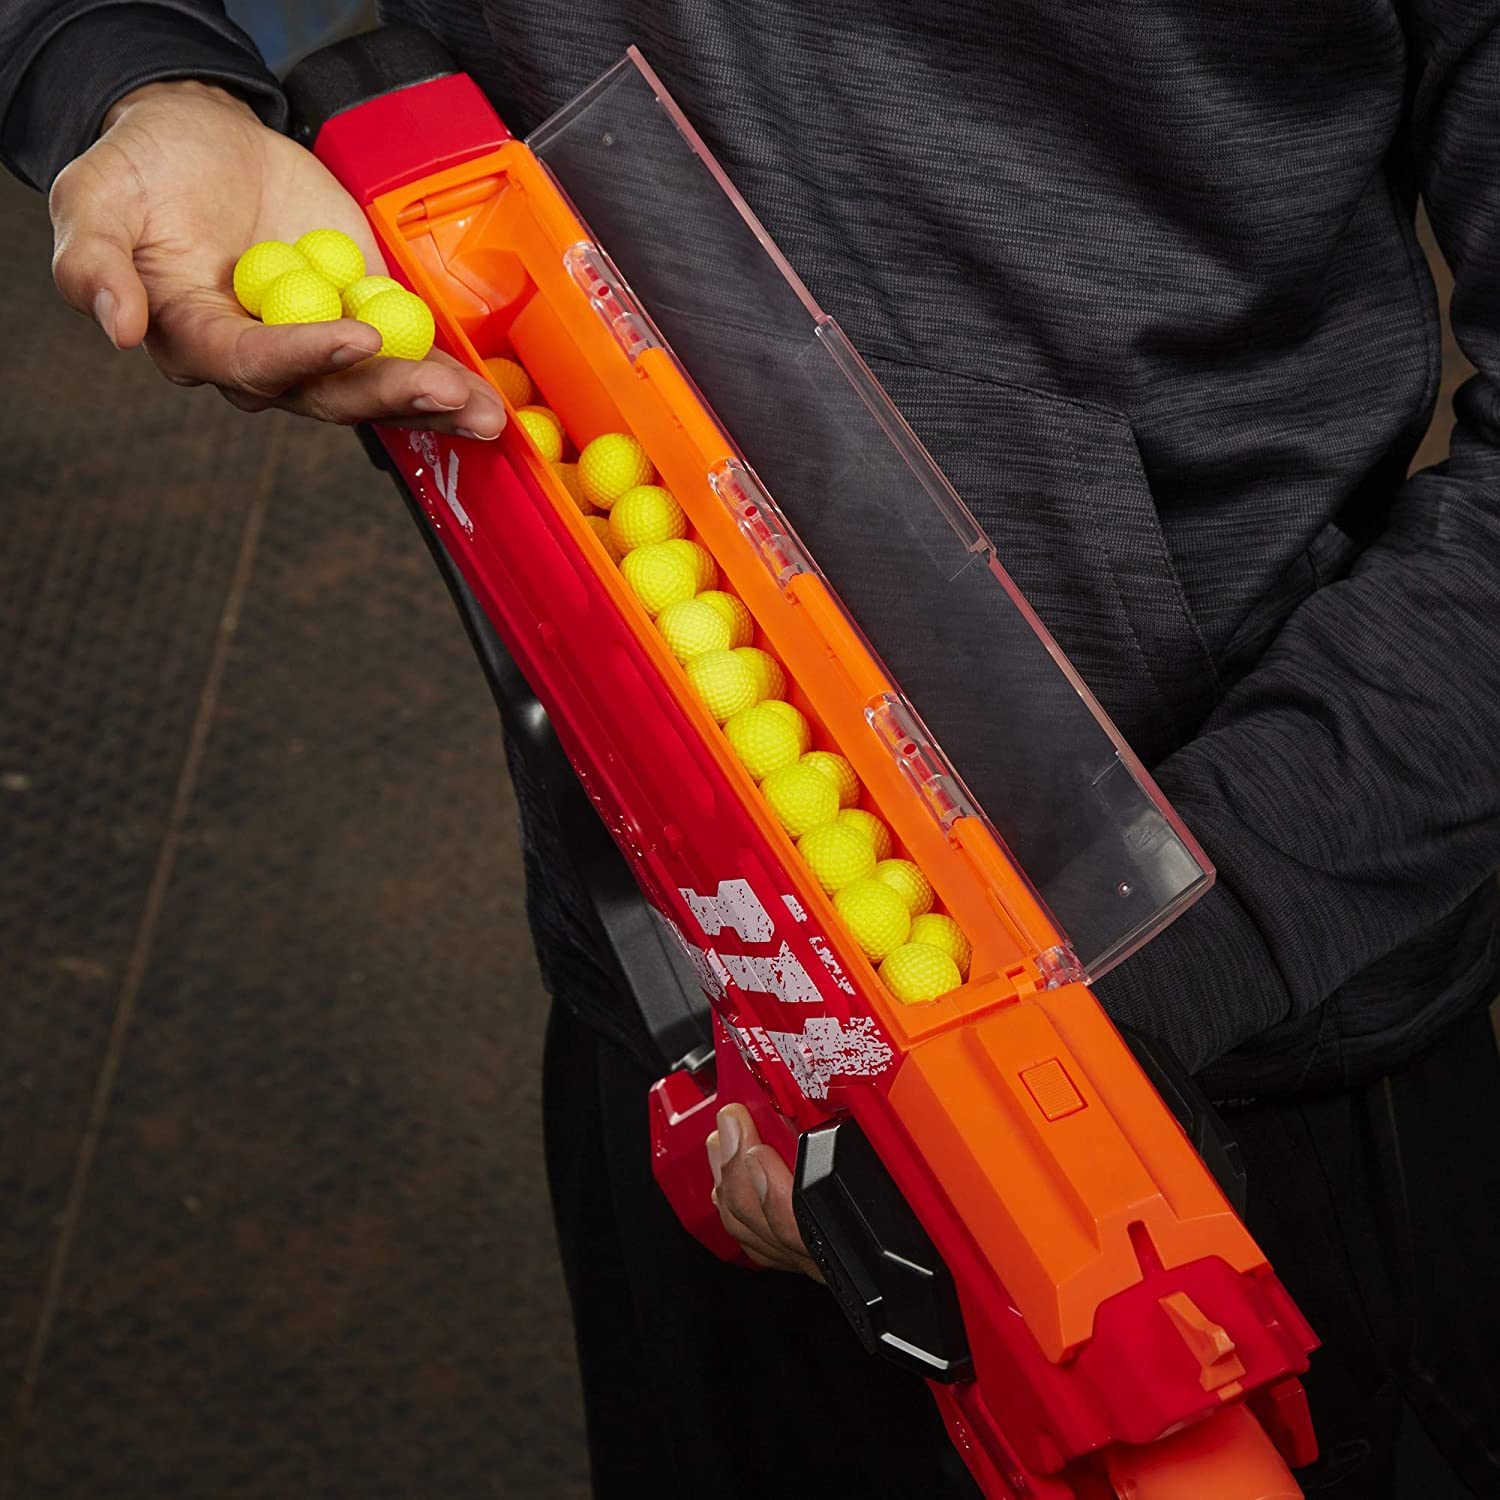 Fastest Blasting Rival System Perses Mxix-5000 Nerf Rival Motorized Blaster Red -